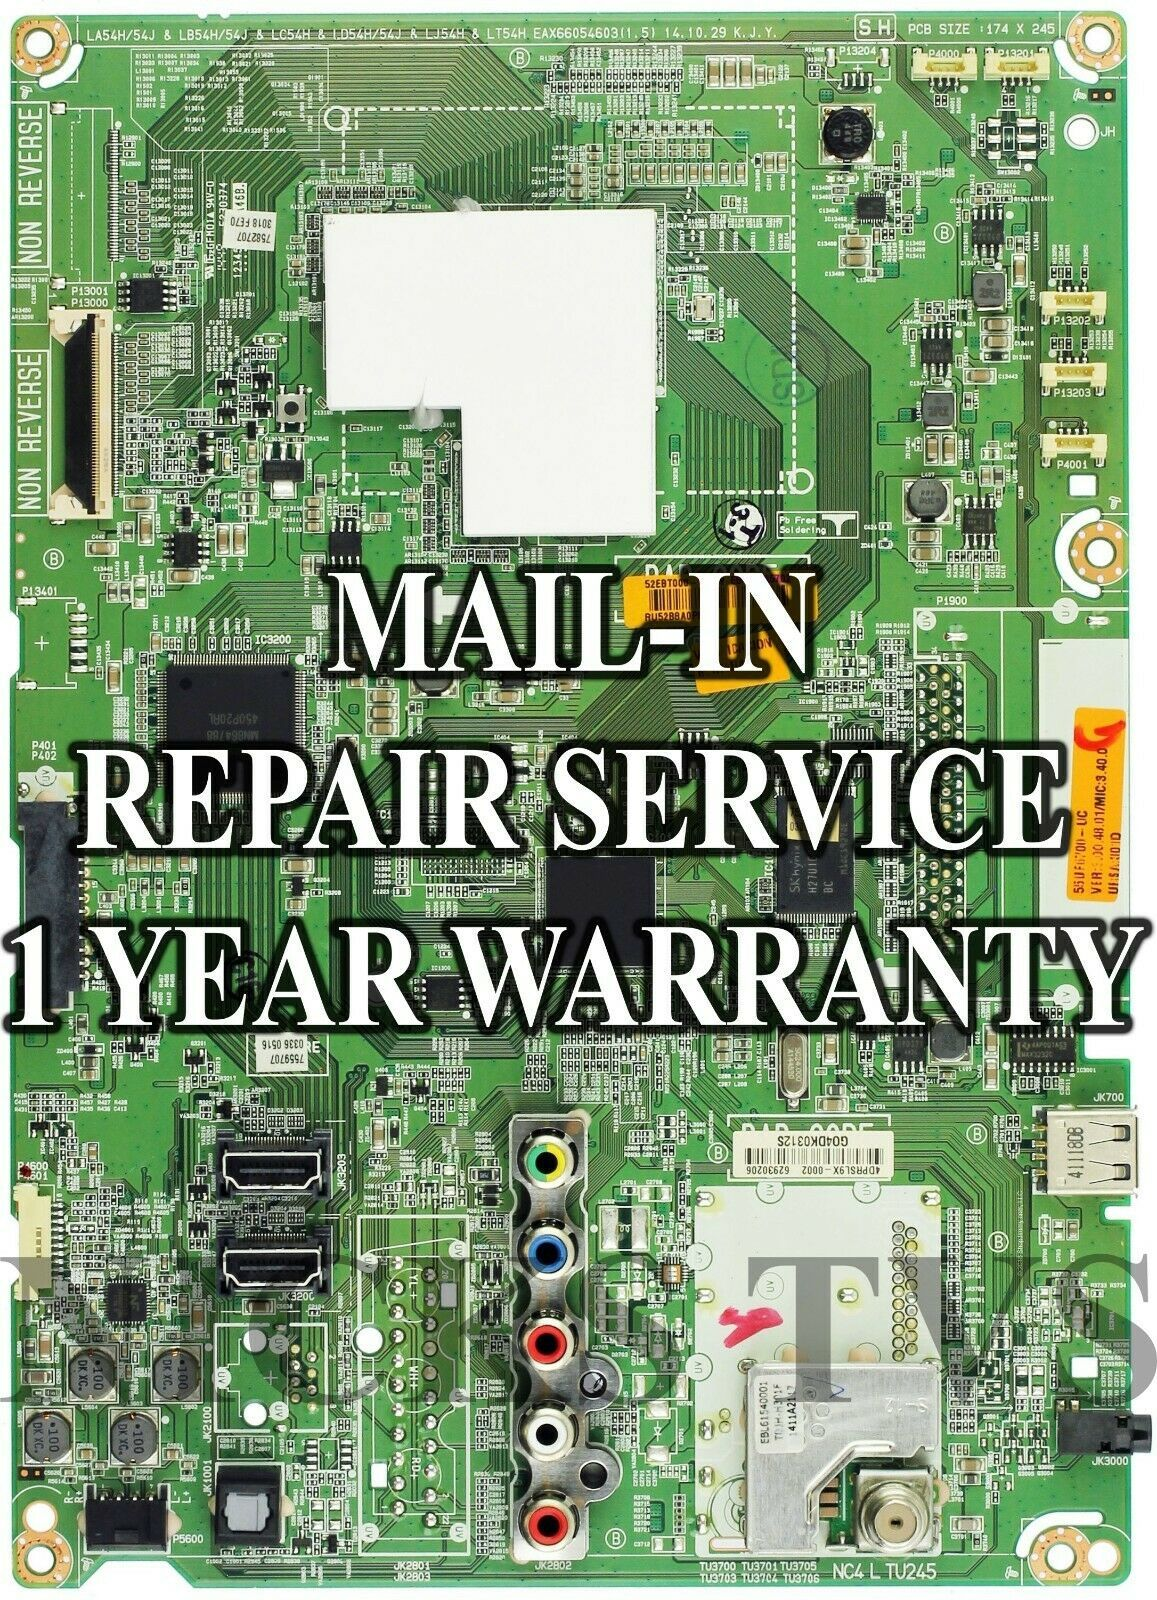 Primary image for Mail-in Repair Service EBT63535703 MAIN EAX66054604 FOR 55UF6700 1 YEAR WARRANTY